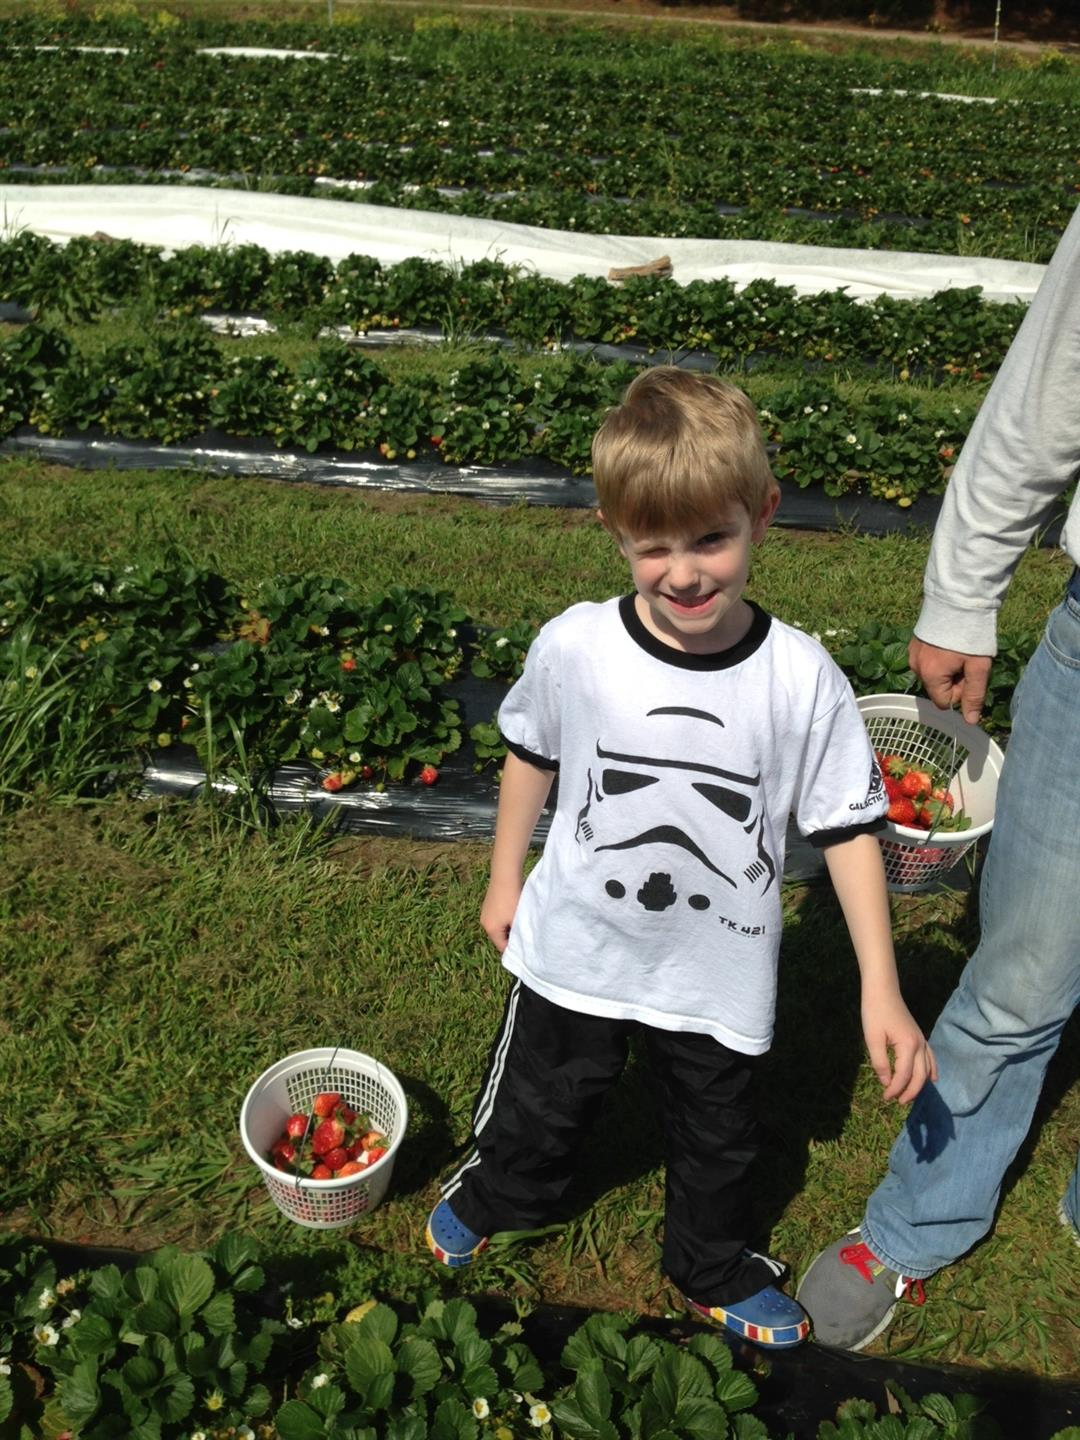 Small child smiling for a photo while in the midst of picking strawberries